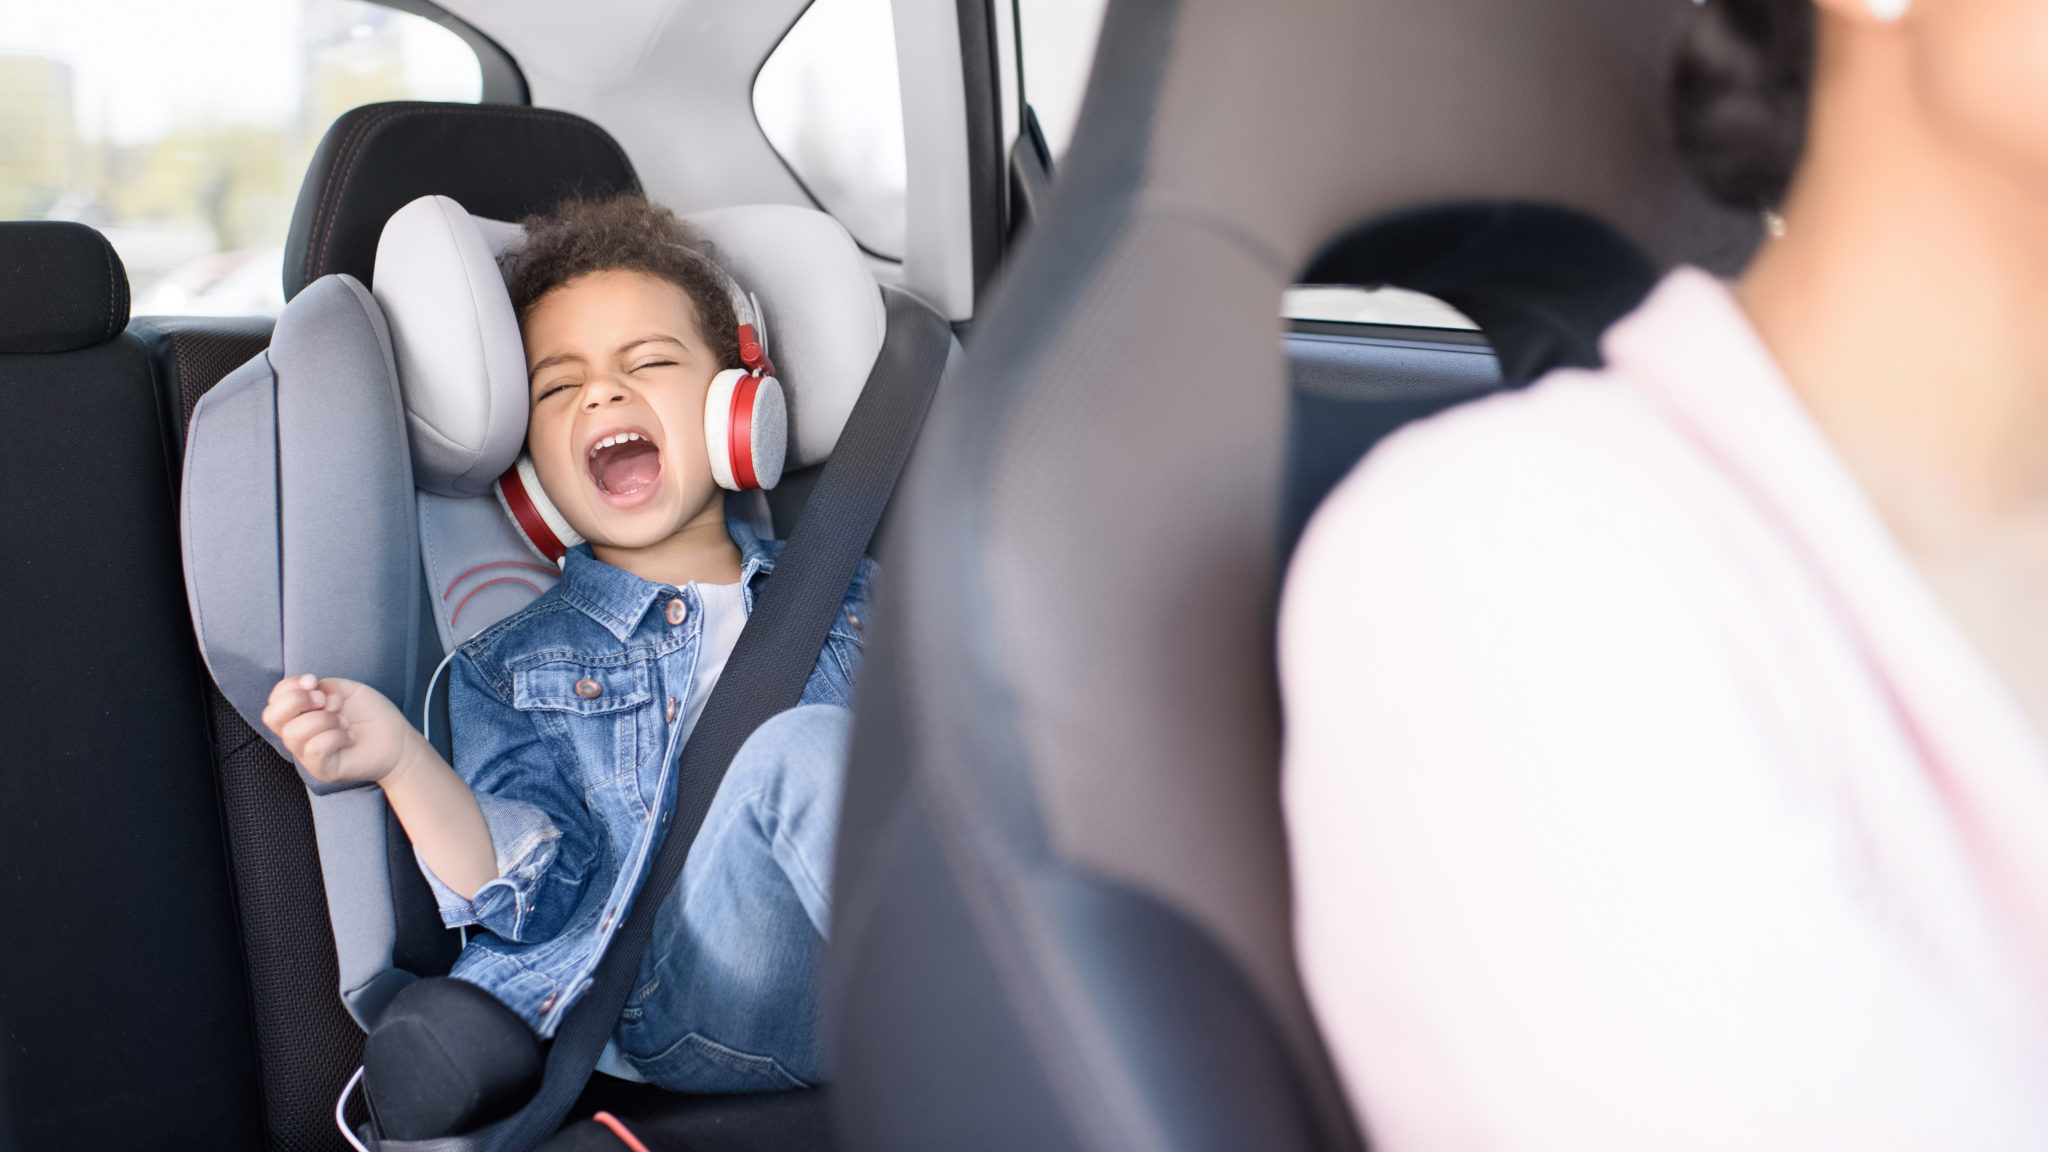 Learning how to stop a child from screaming for no reason is as simple as remaining calm.